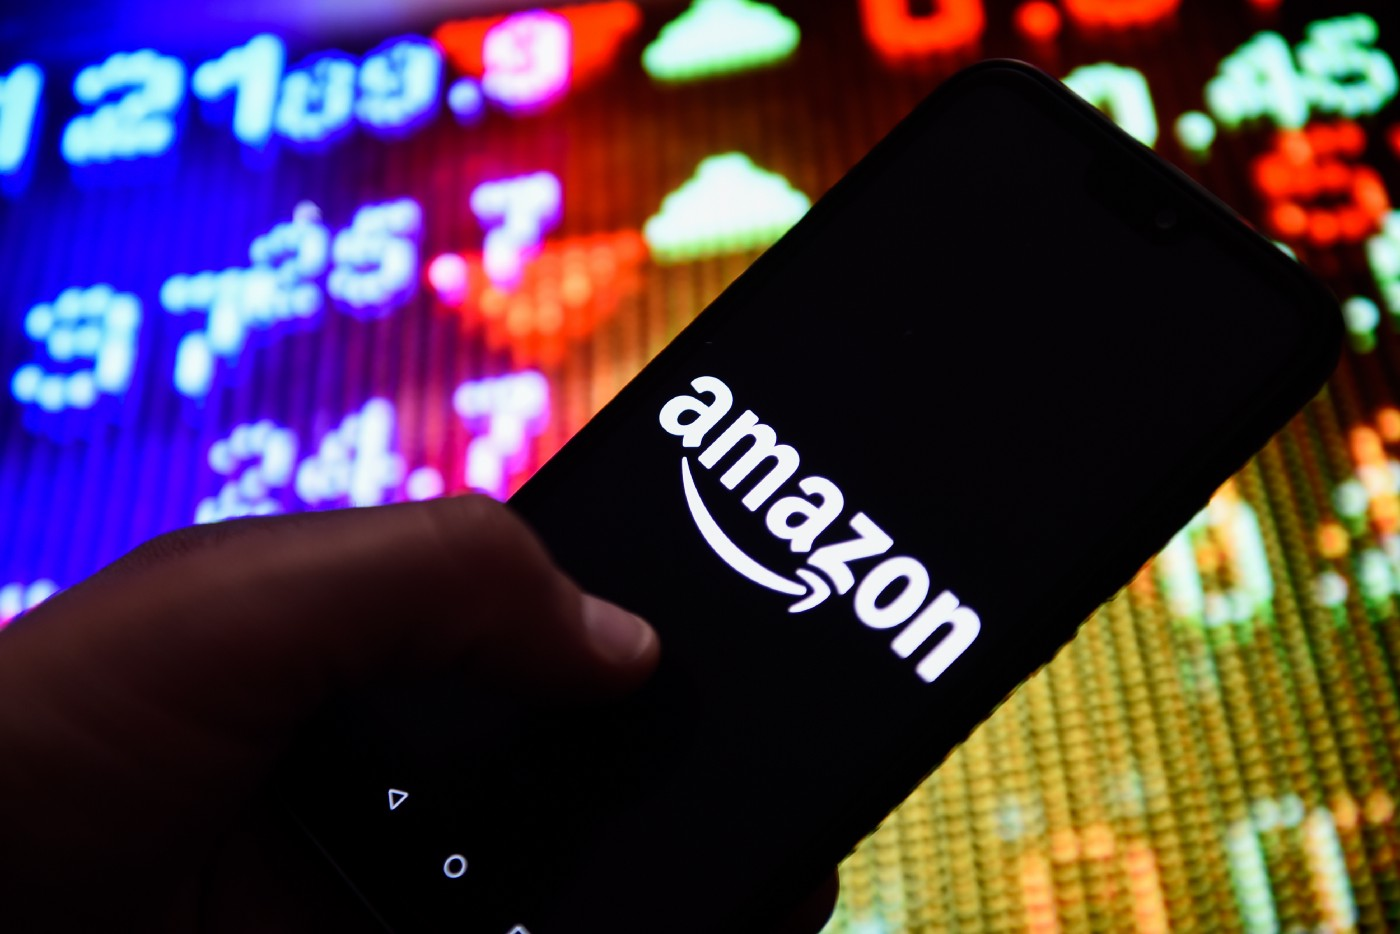 Photo illustration of the Amazon logo displayed on a smart phone against a colorful stock ticker backdrop.